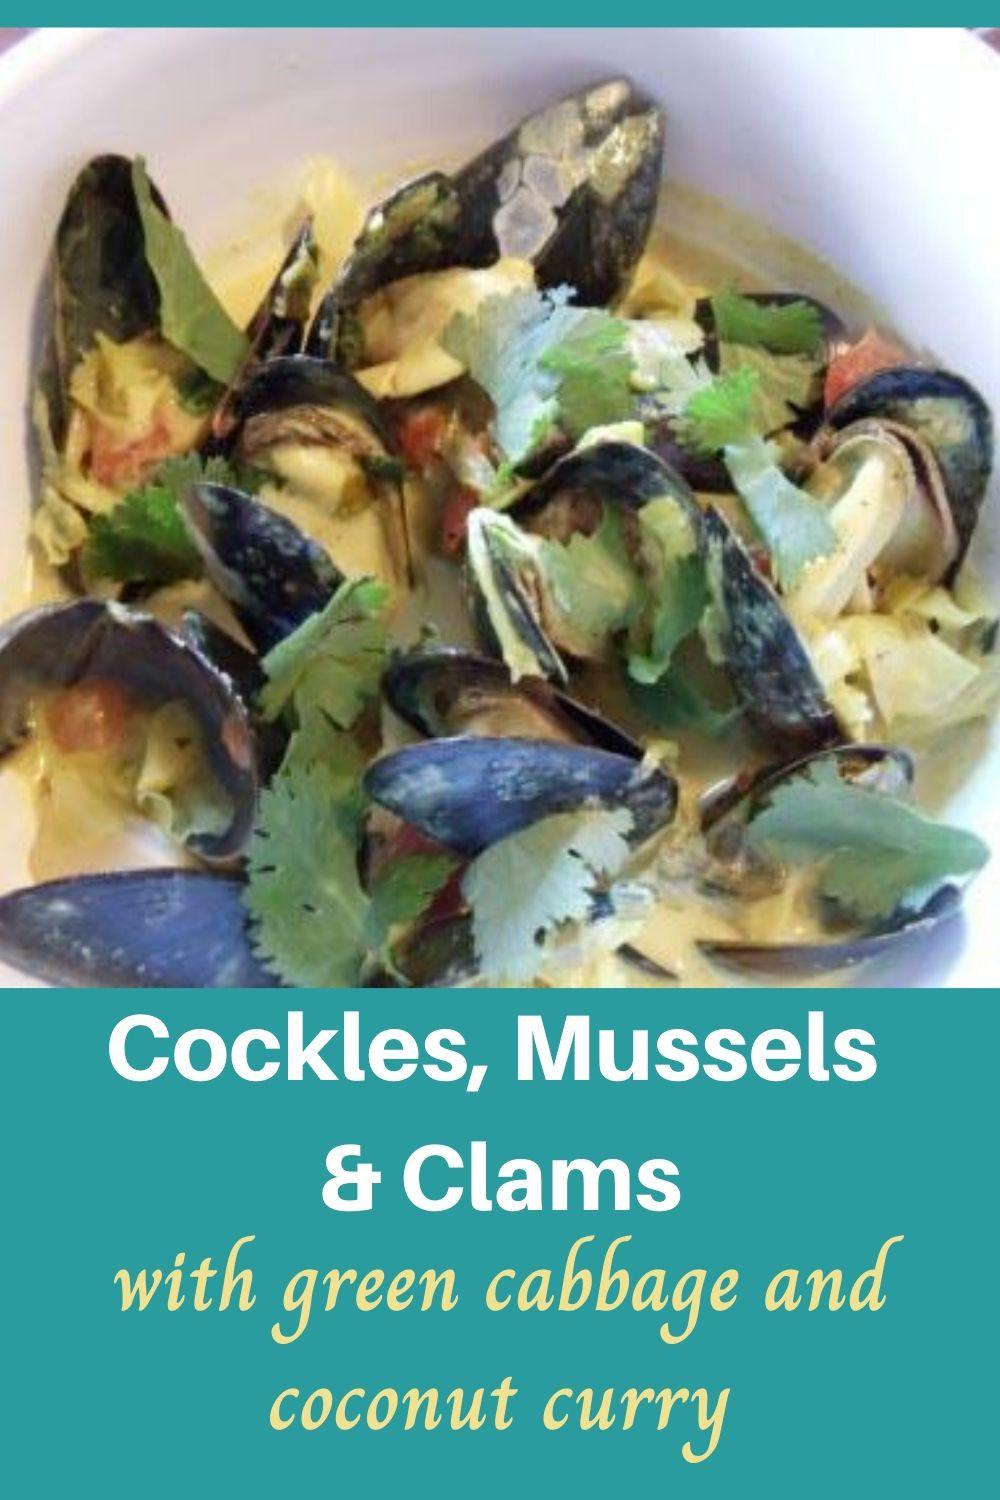 Recipe for Cockles, Mussels and Clams with Cabbage and Coconut Curry